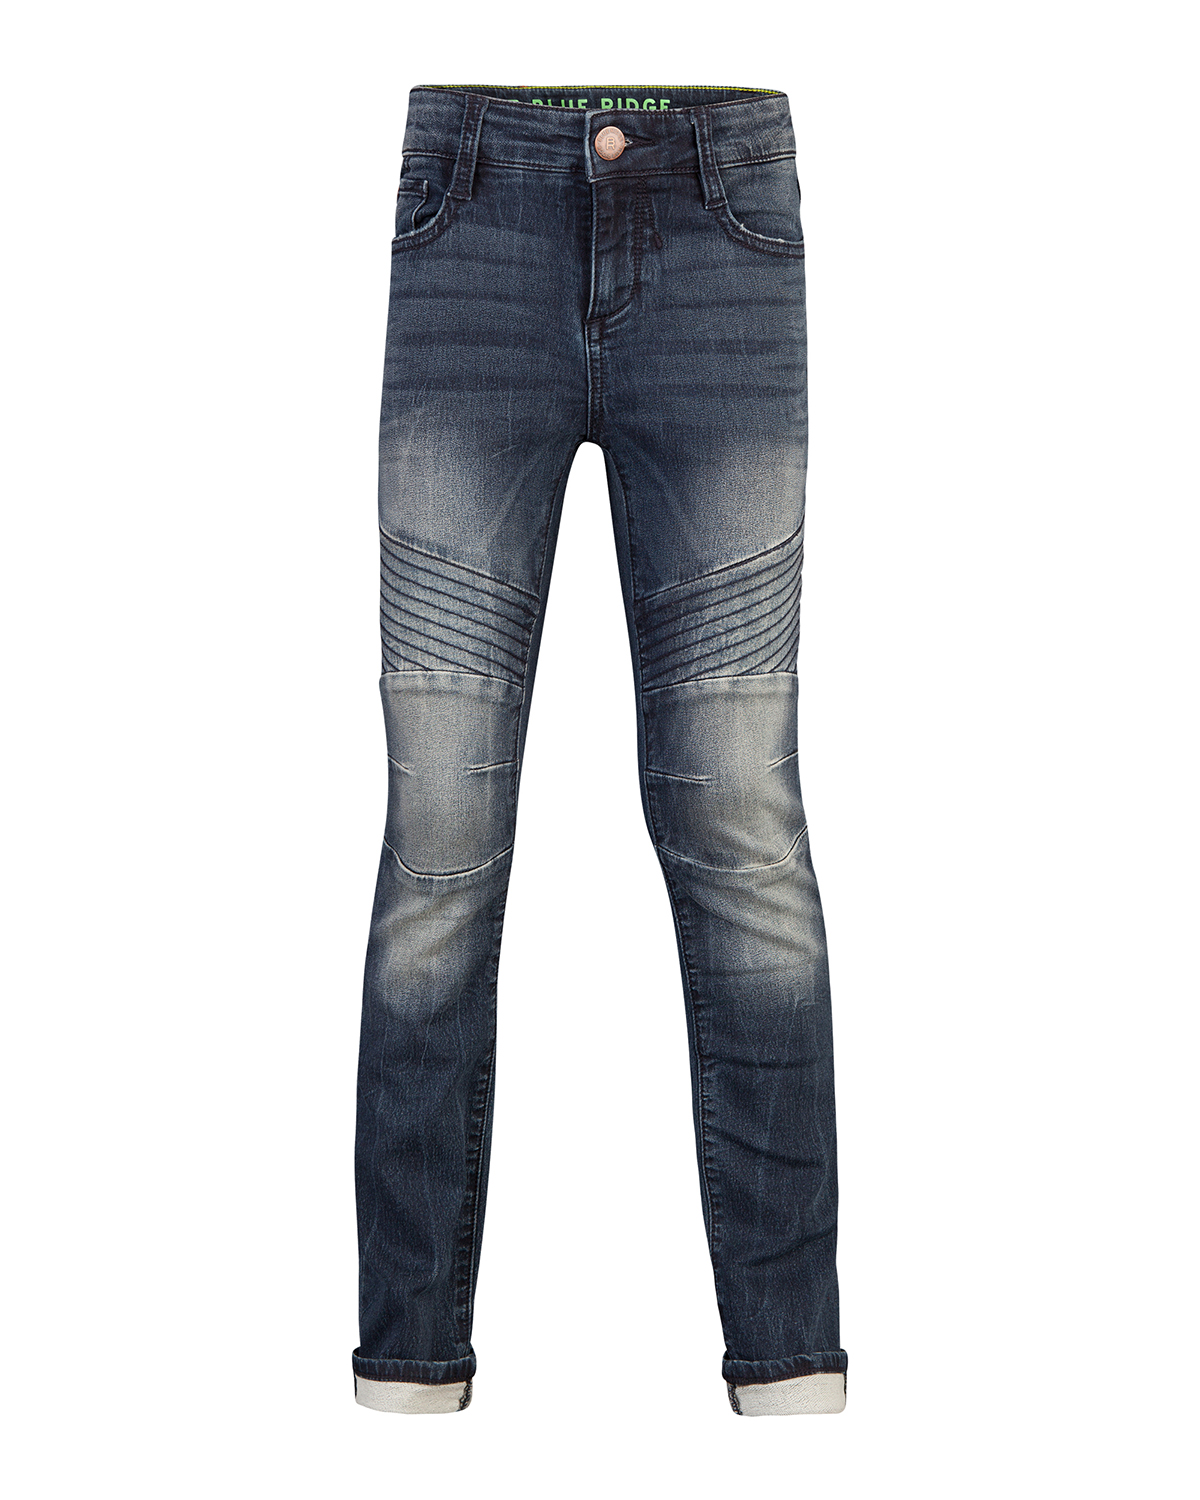 Jongens skinny fit biker jog denim